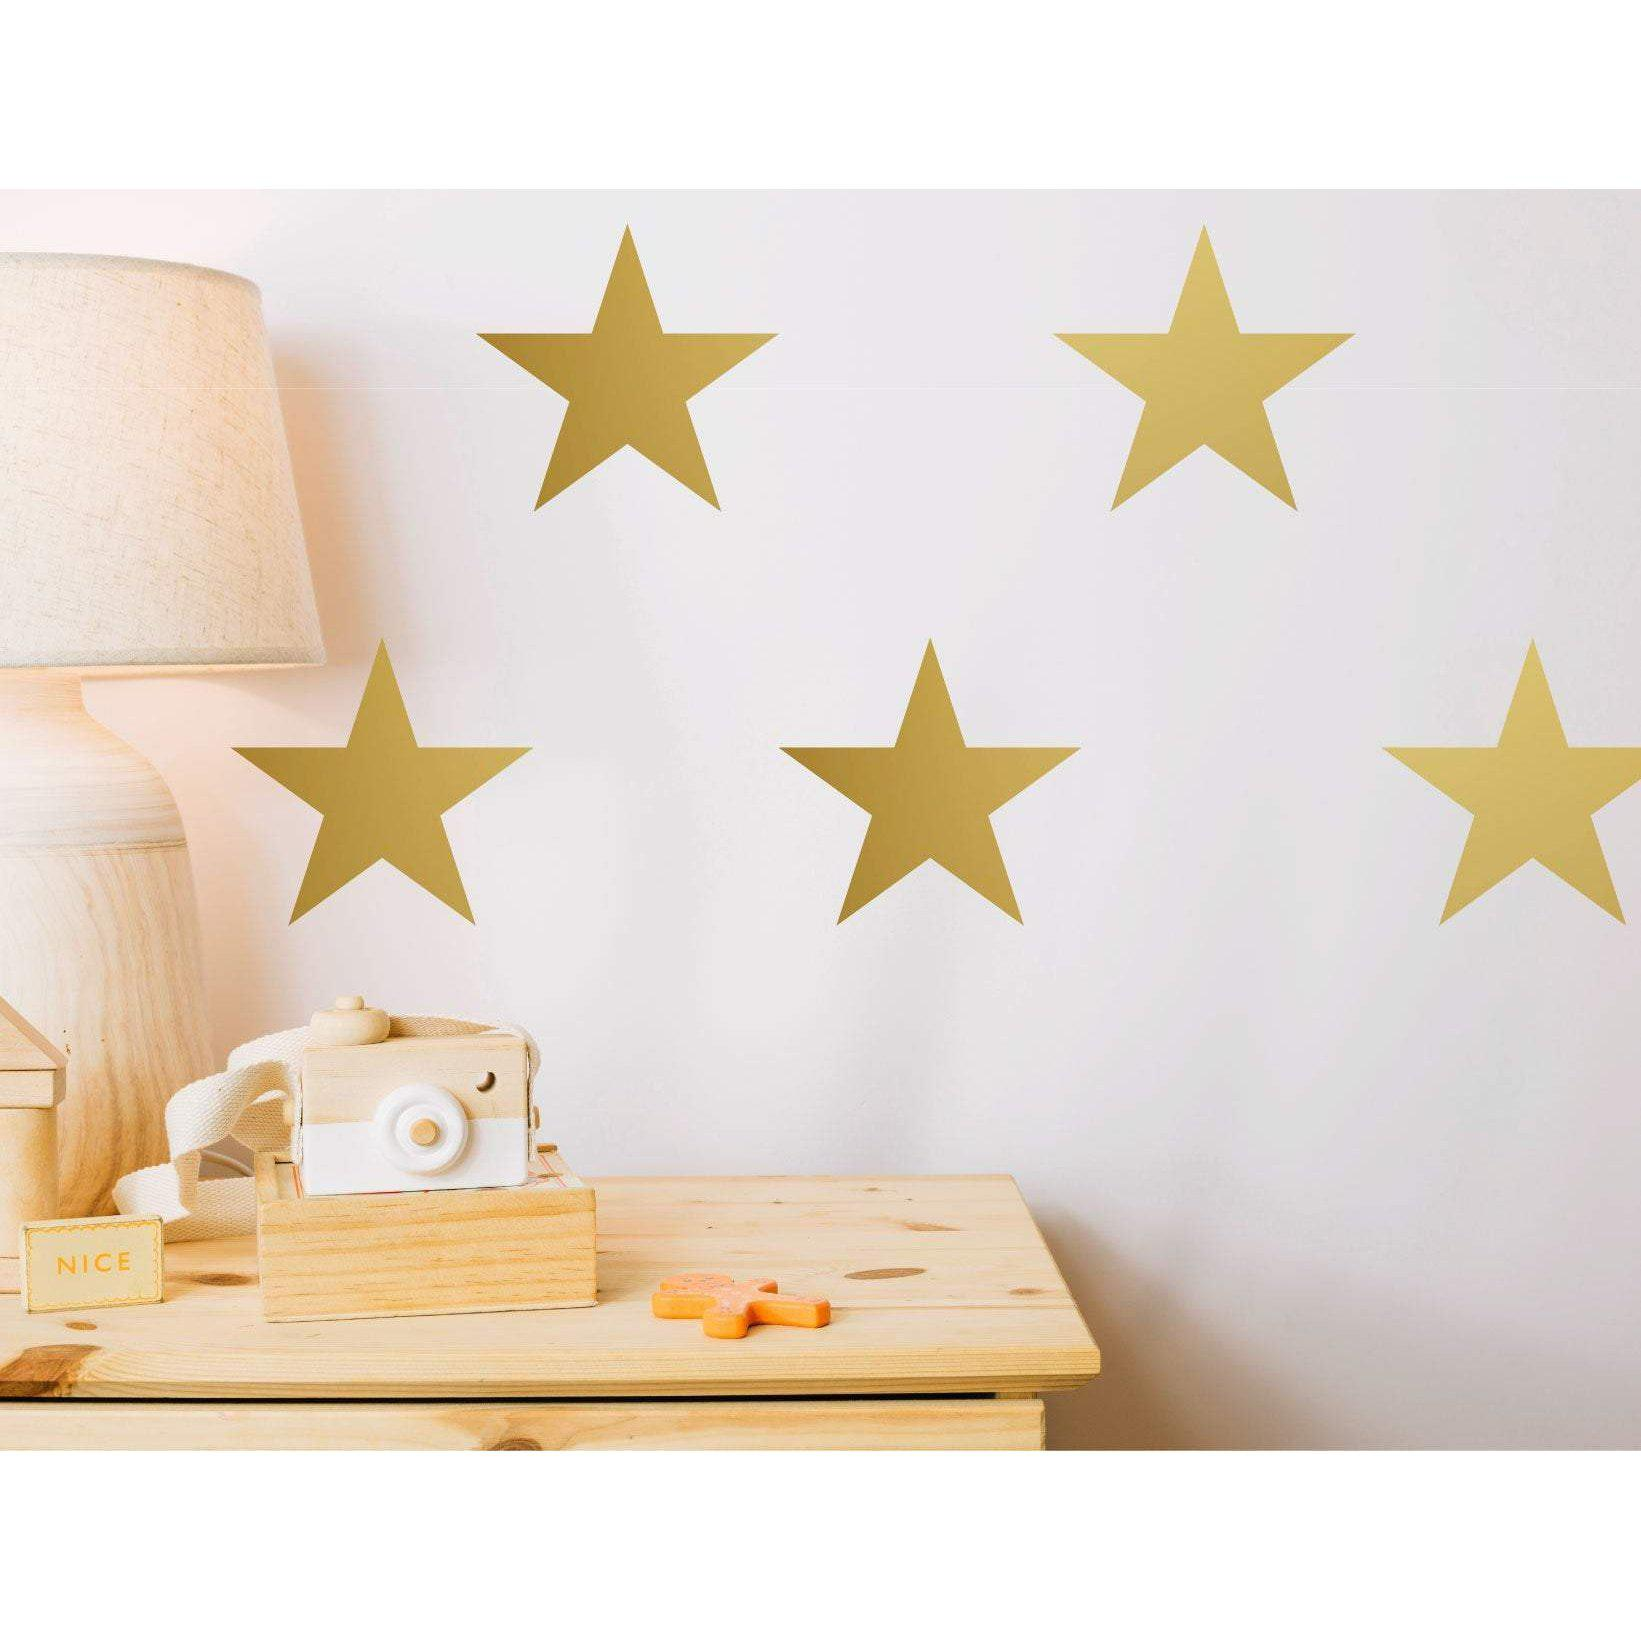 Star Wall Stickers, Star Wall Decals, Wall Stickers Stars, Nursery Wall Art, Nursery Stickers, Nursery Decals, Wall Stickers Nursery, Decor